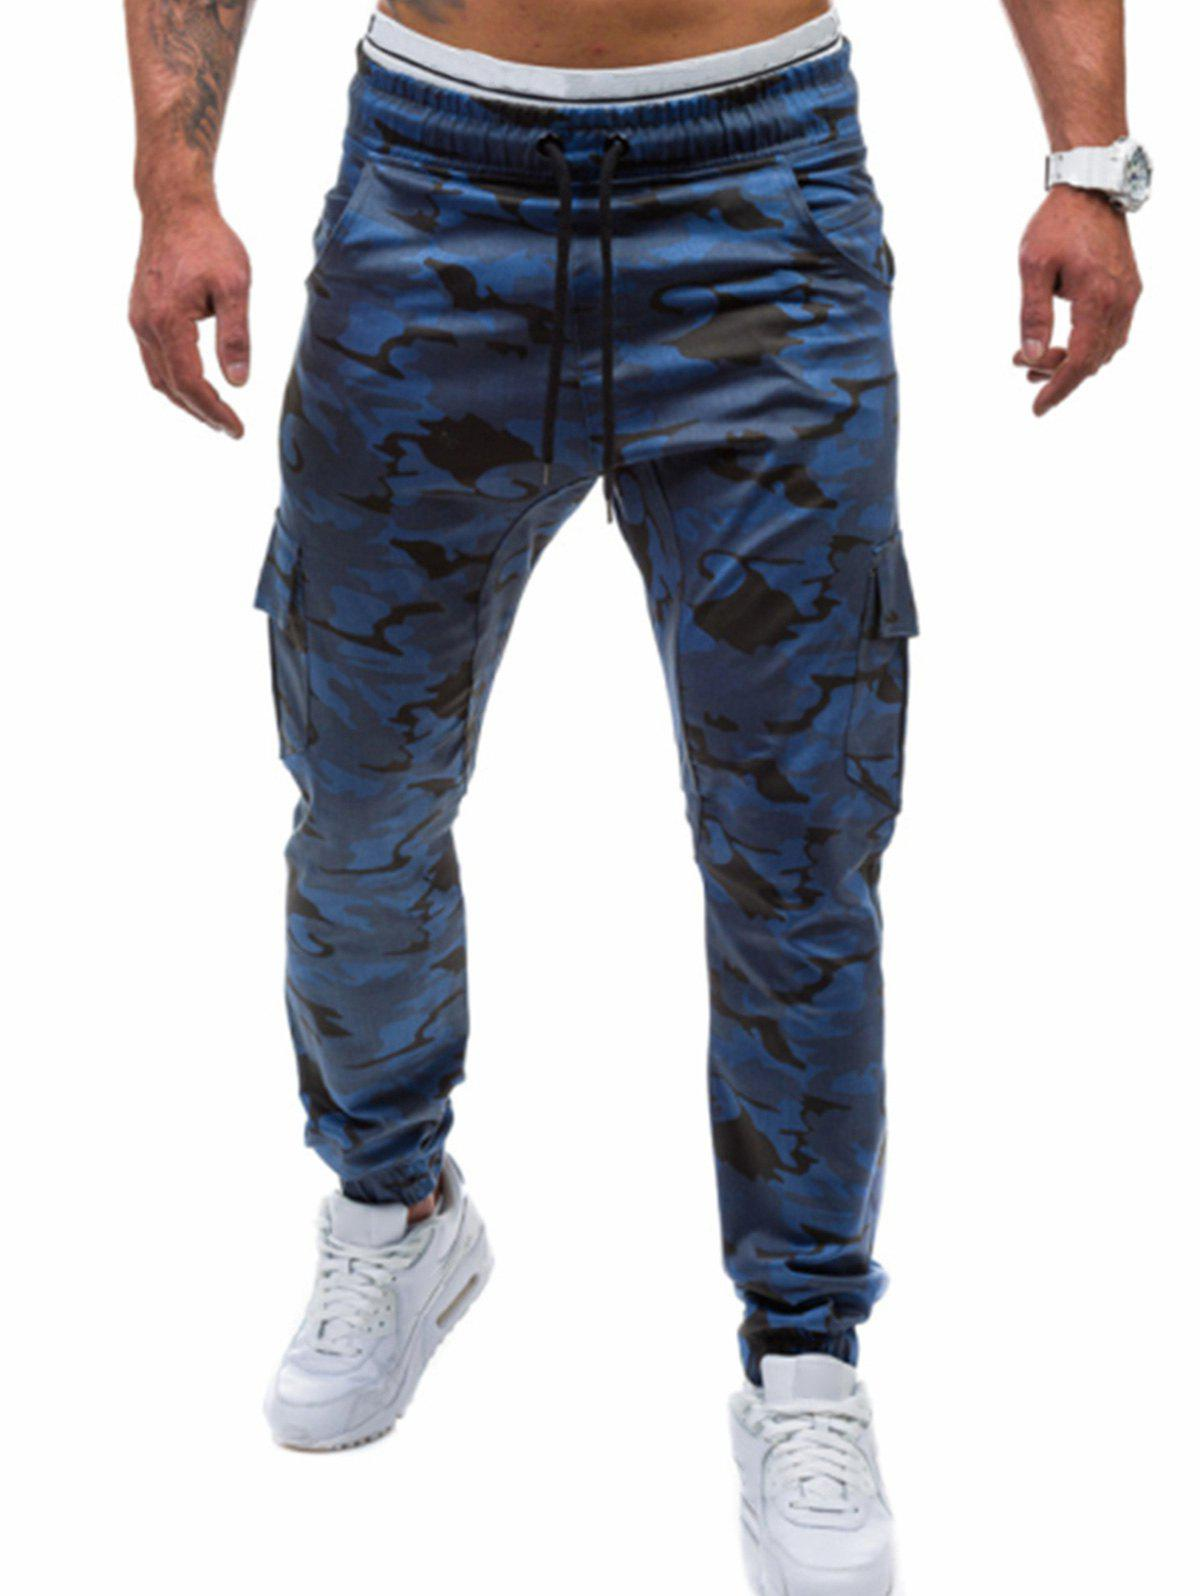 Buy Camo Printed Cargo Jogger Pants